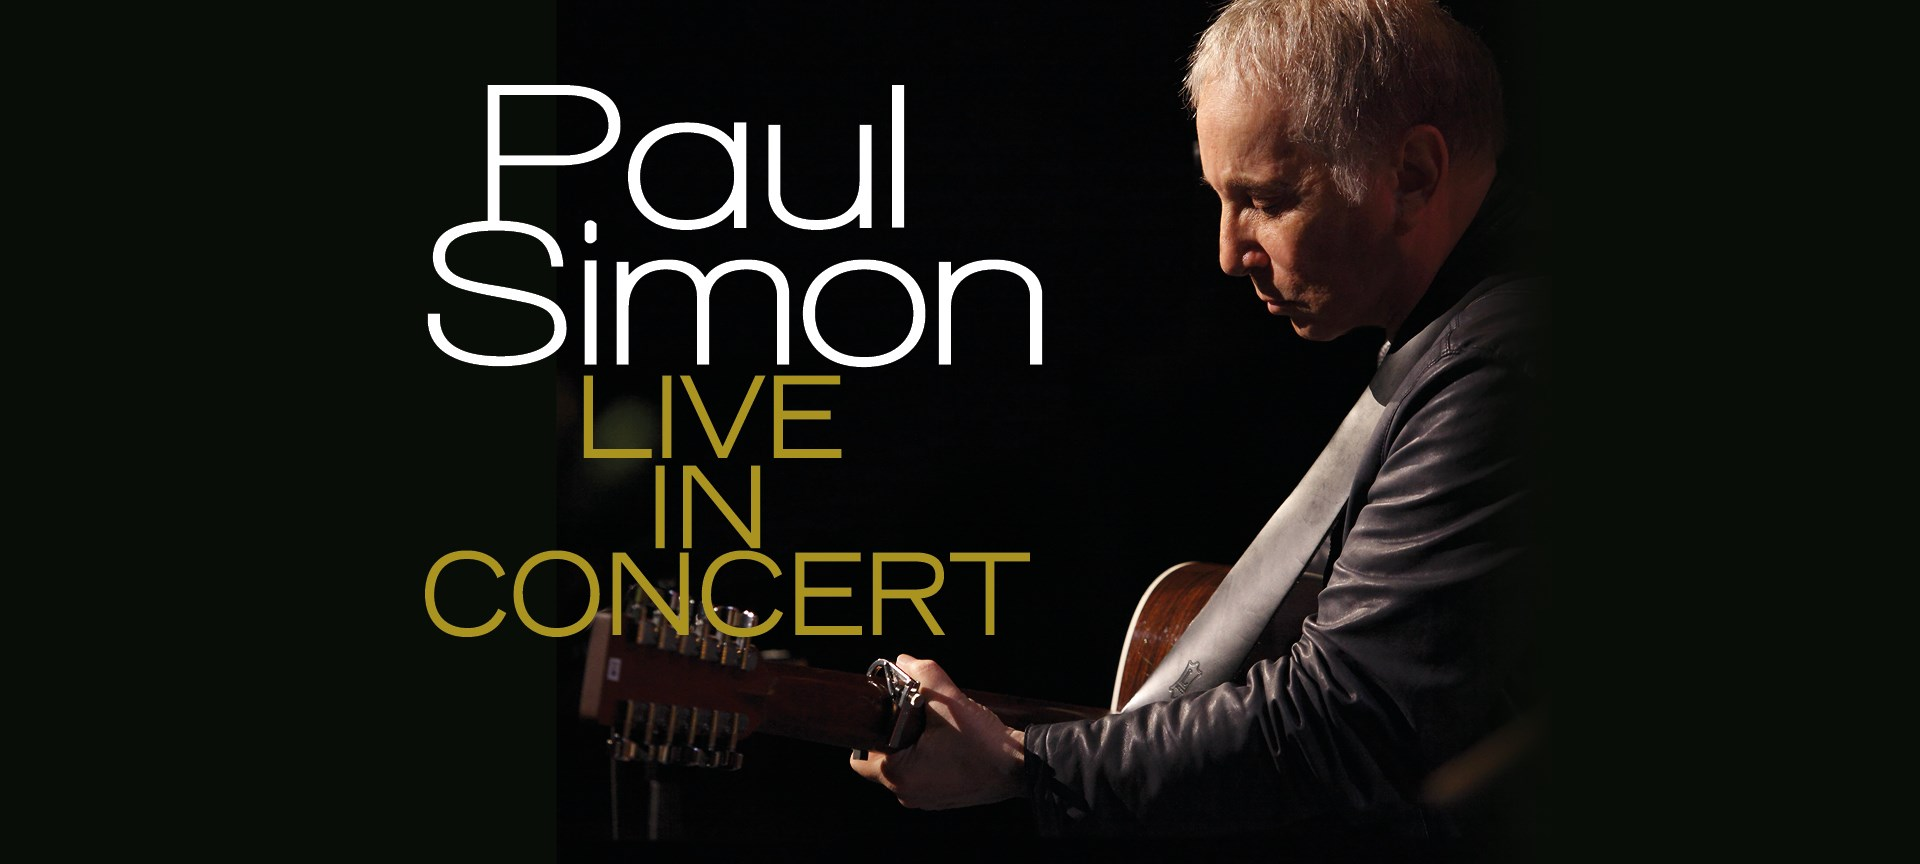 Paul Simon live in concert